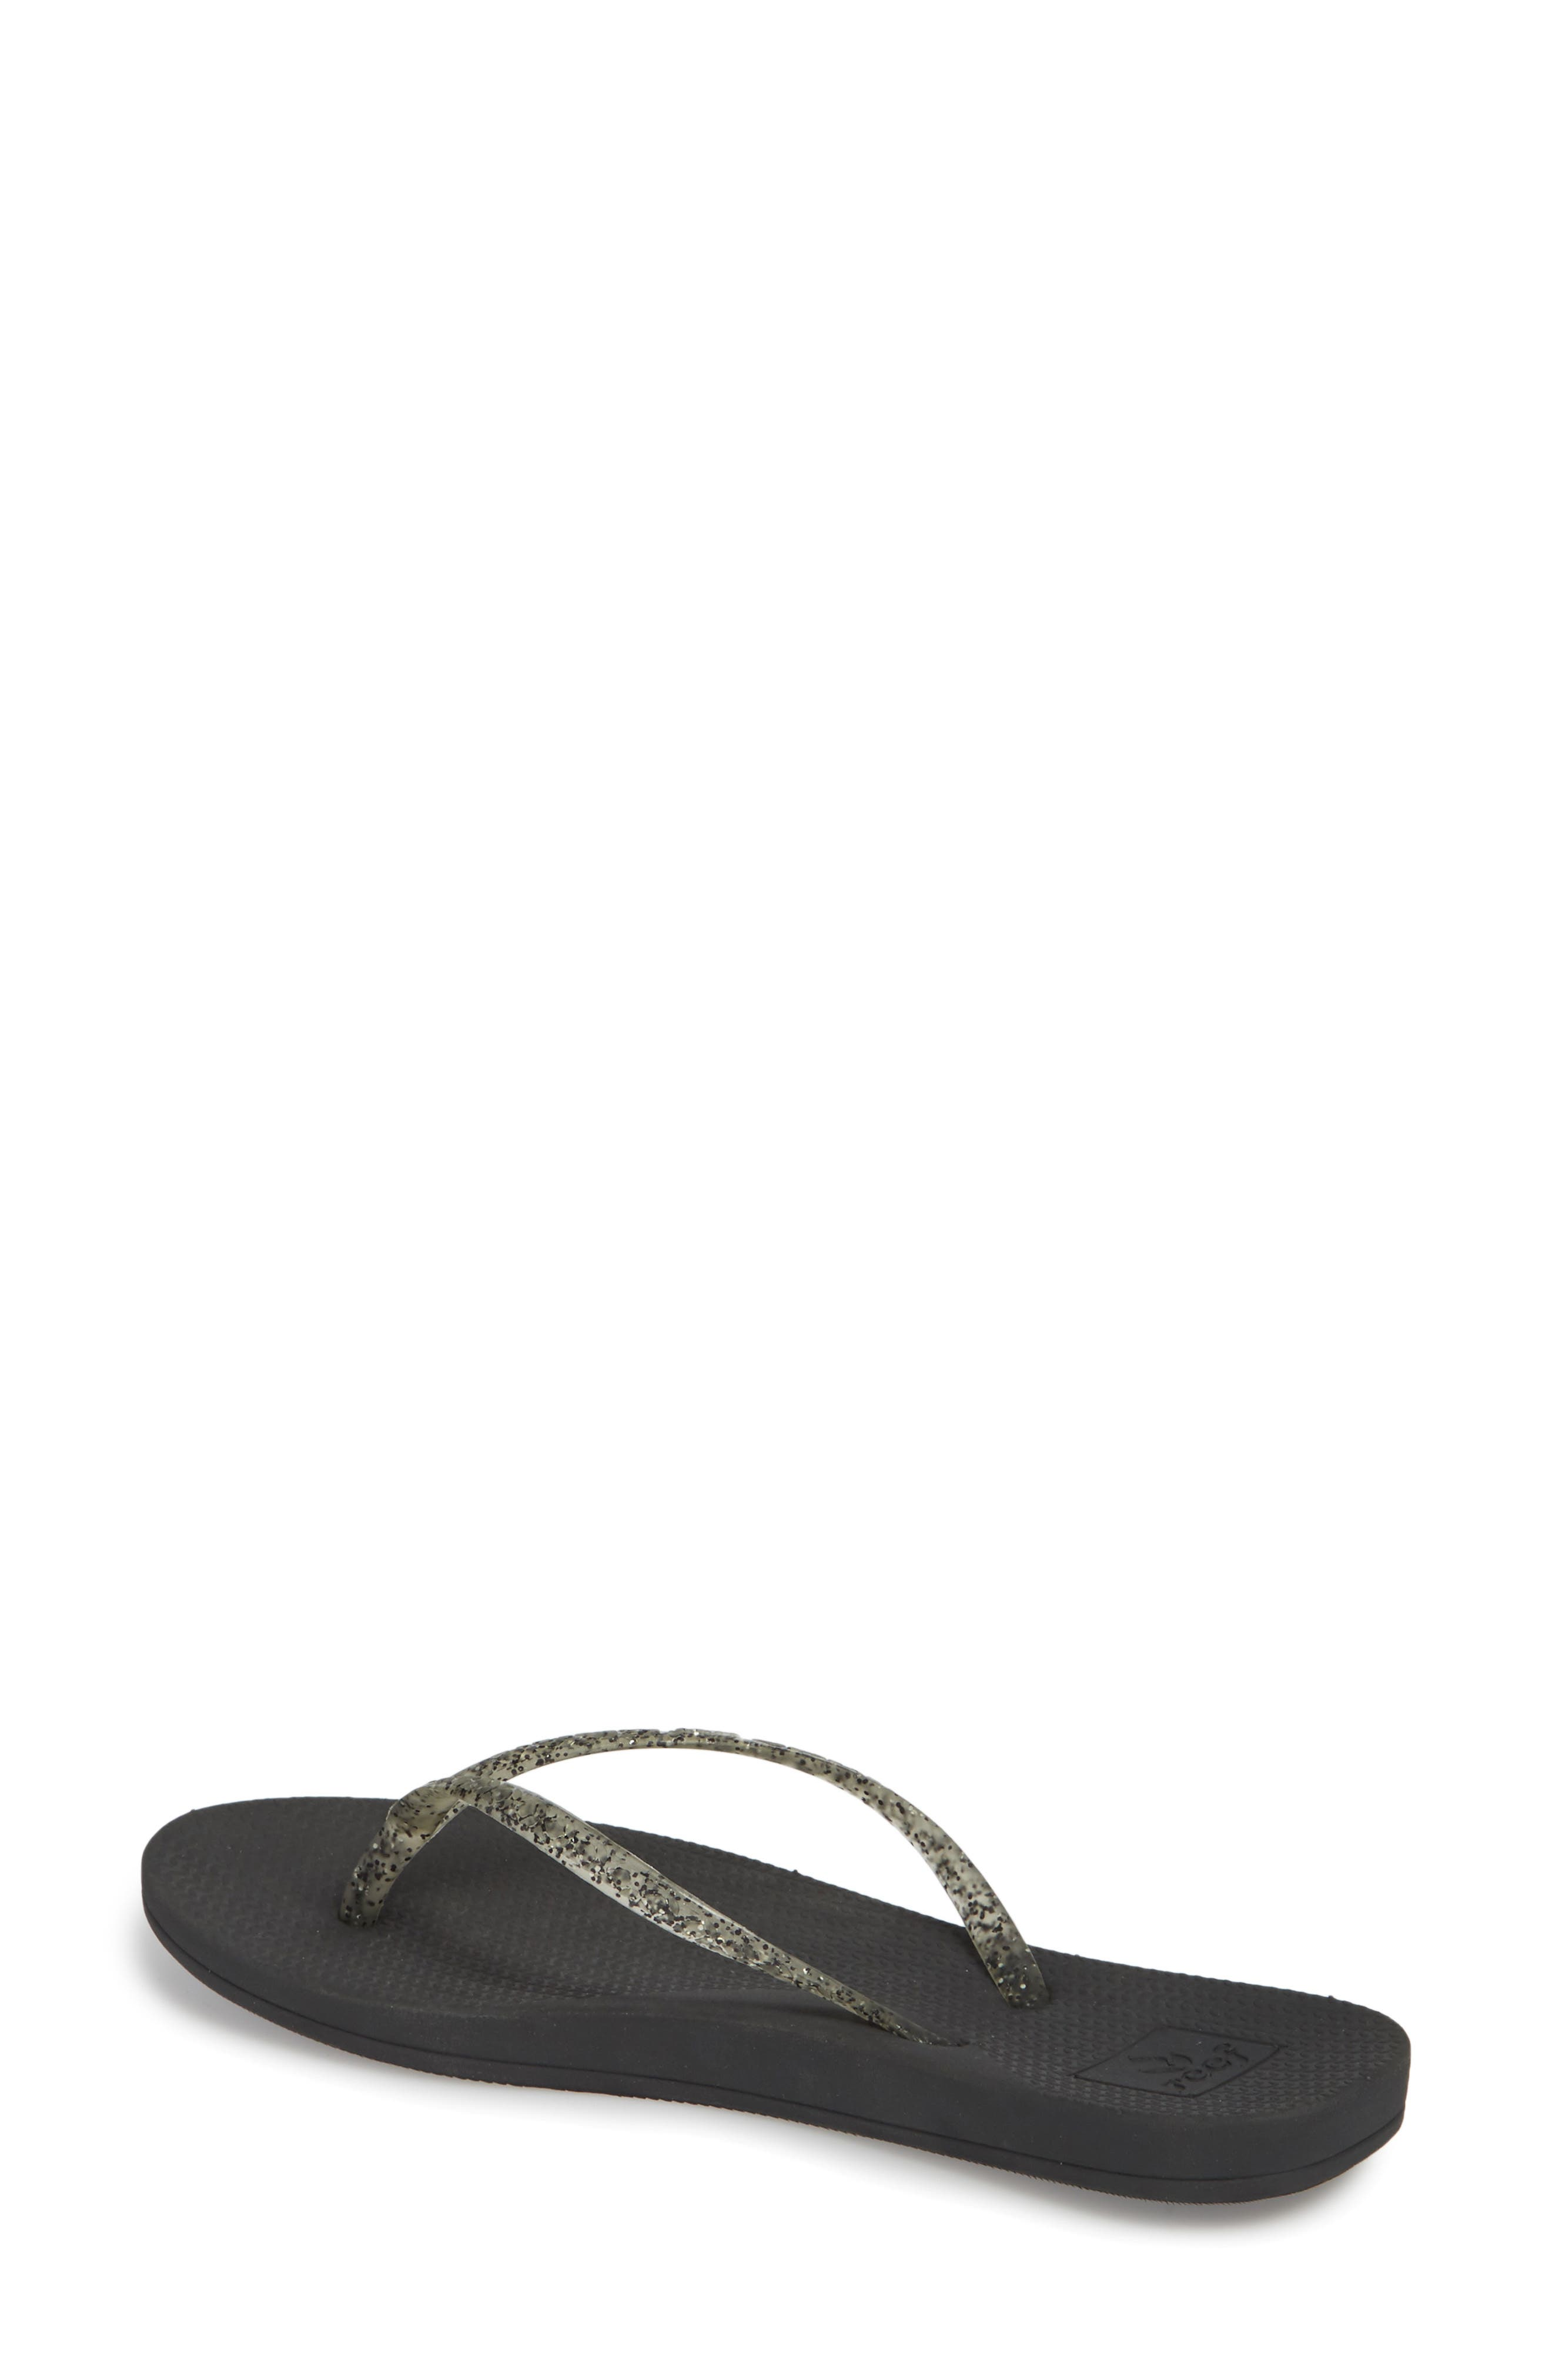 Lux Shimmer Flip Flop,                             Alternate thumbnail 2, color,                             001